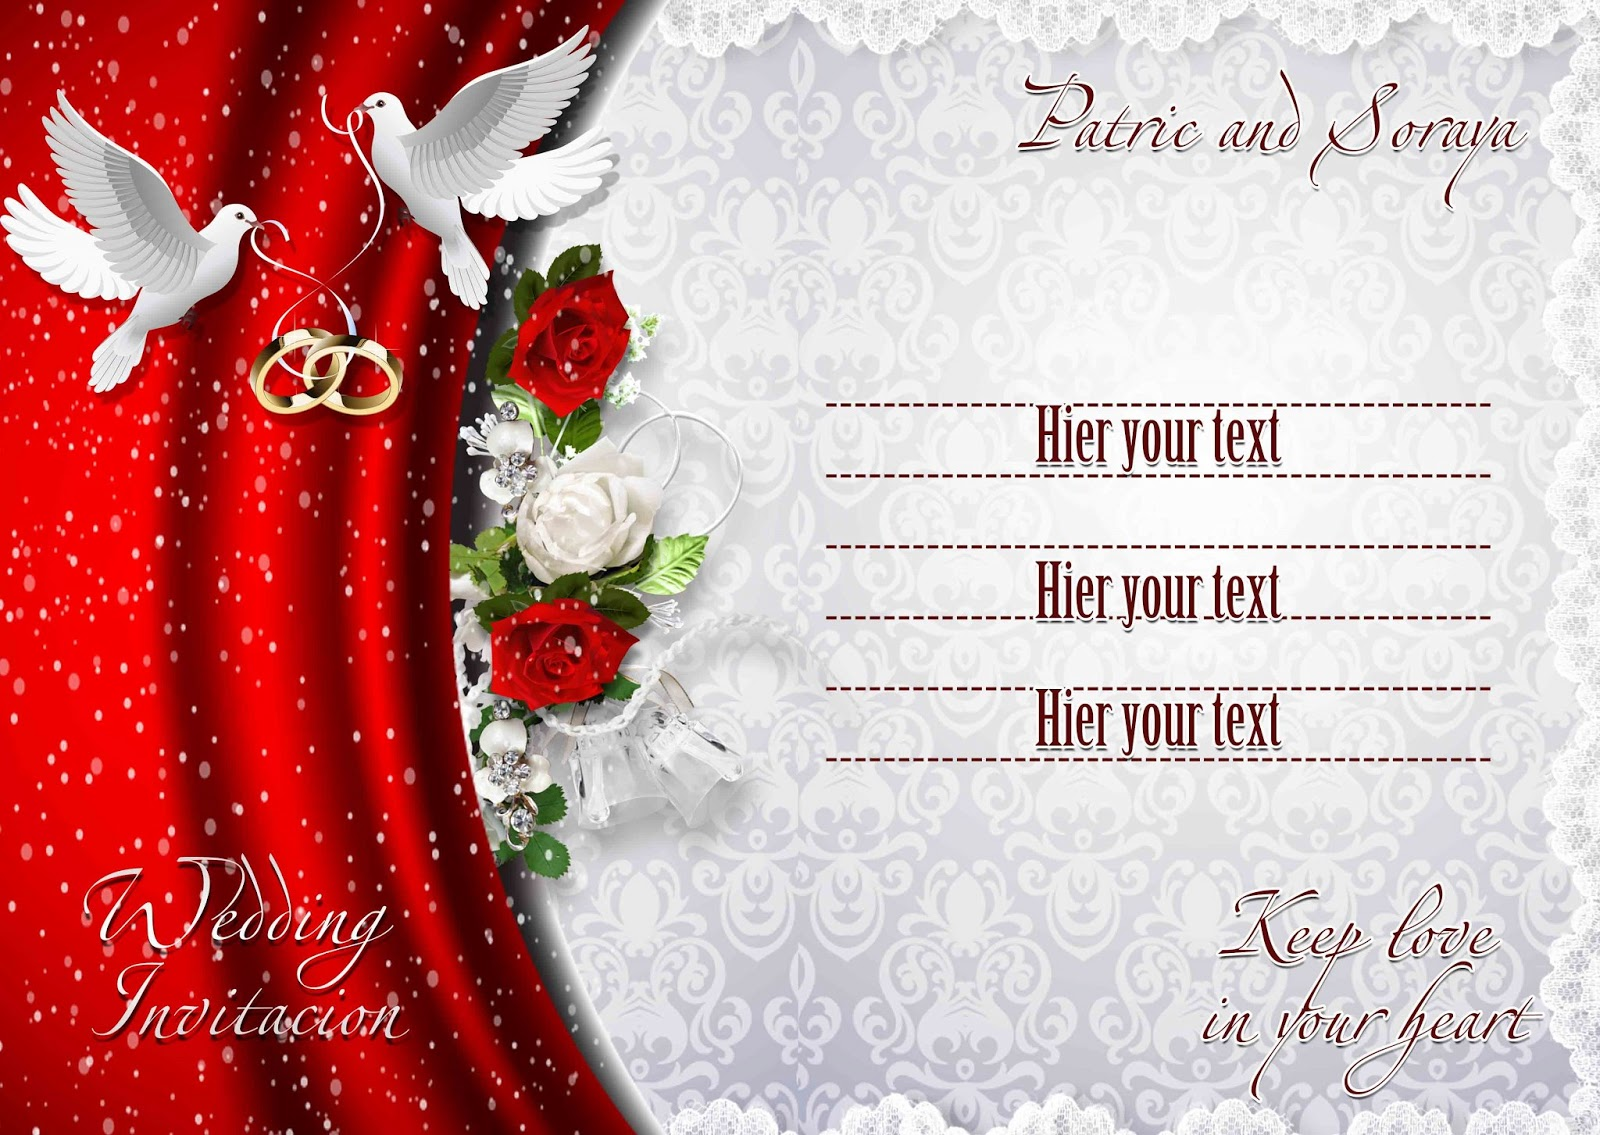 wedding invitation background designs psd free download furniture